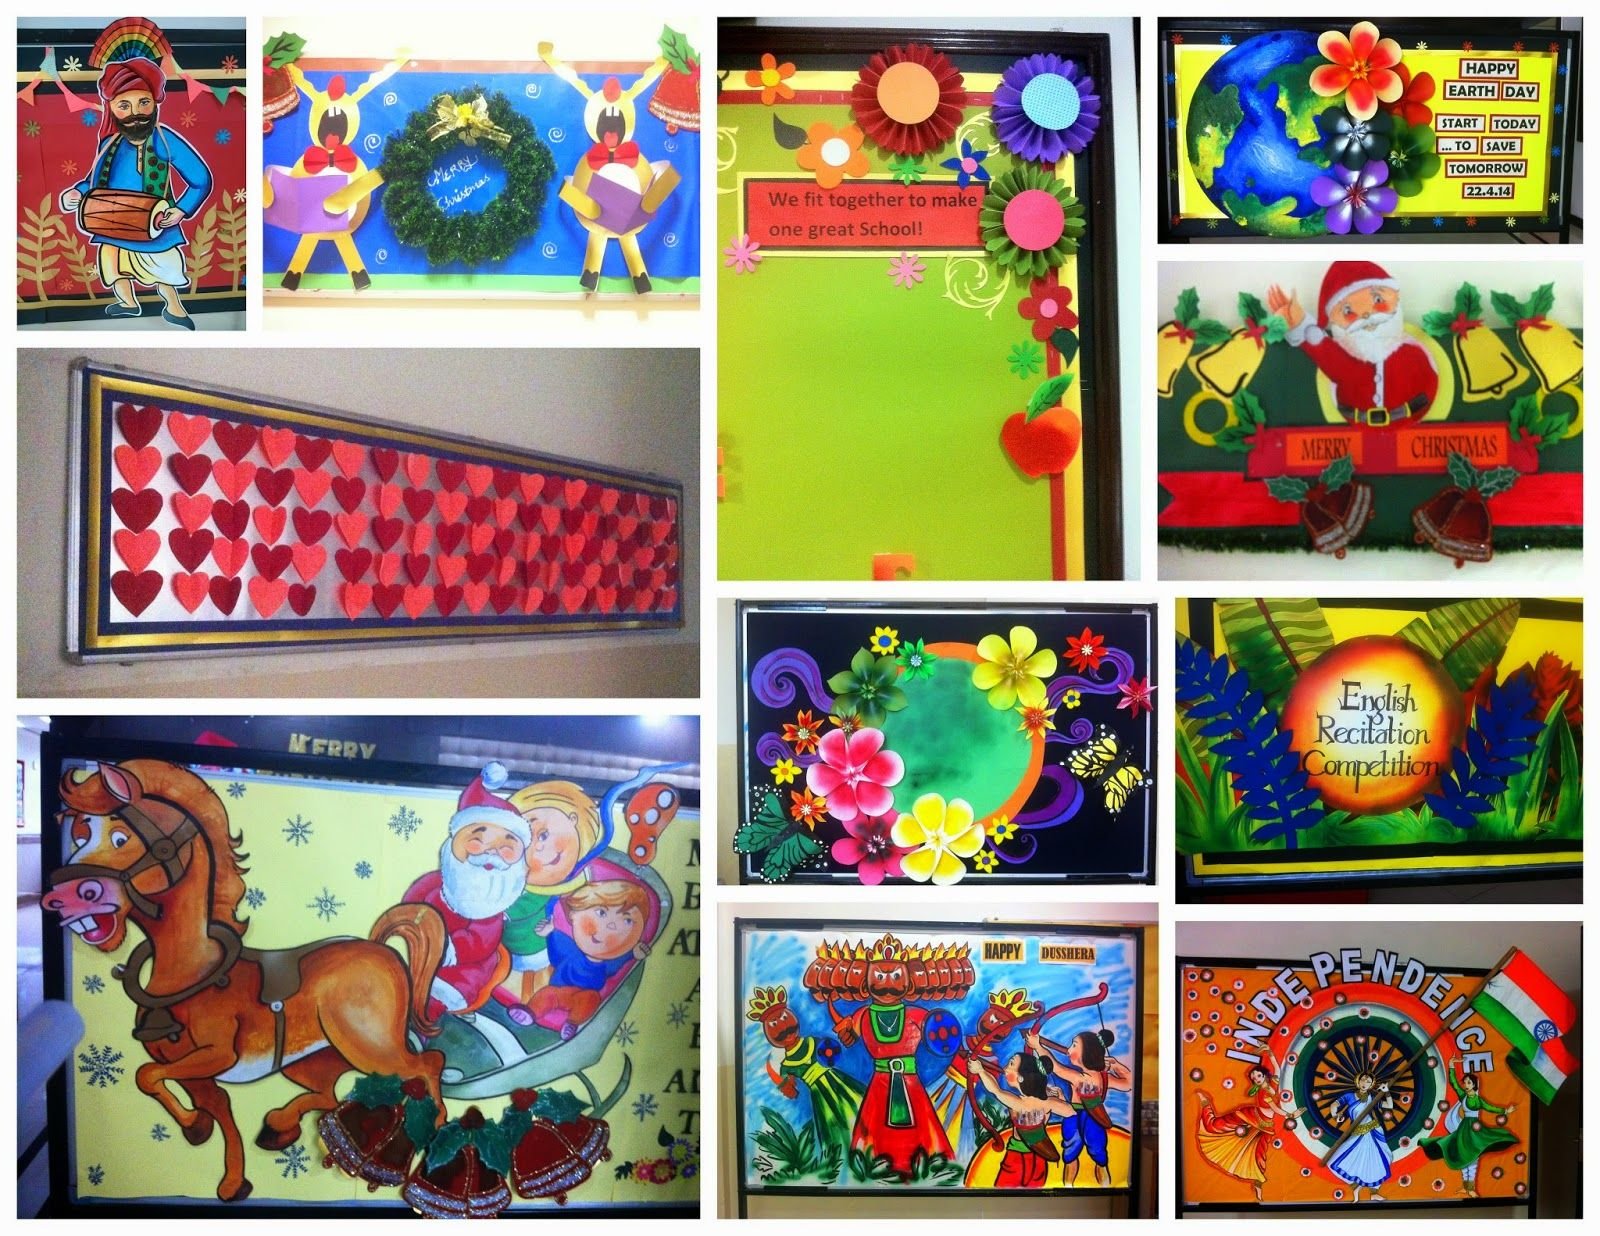 Art craft ideas and bulletin boards for elementary schools vegetable - Art Craft Ideas And Bulletin Boards For Elementary Schools Collection Of Bulletin Boards